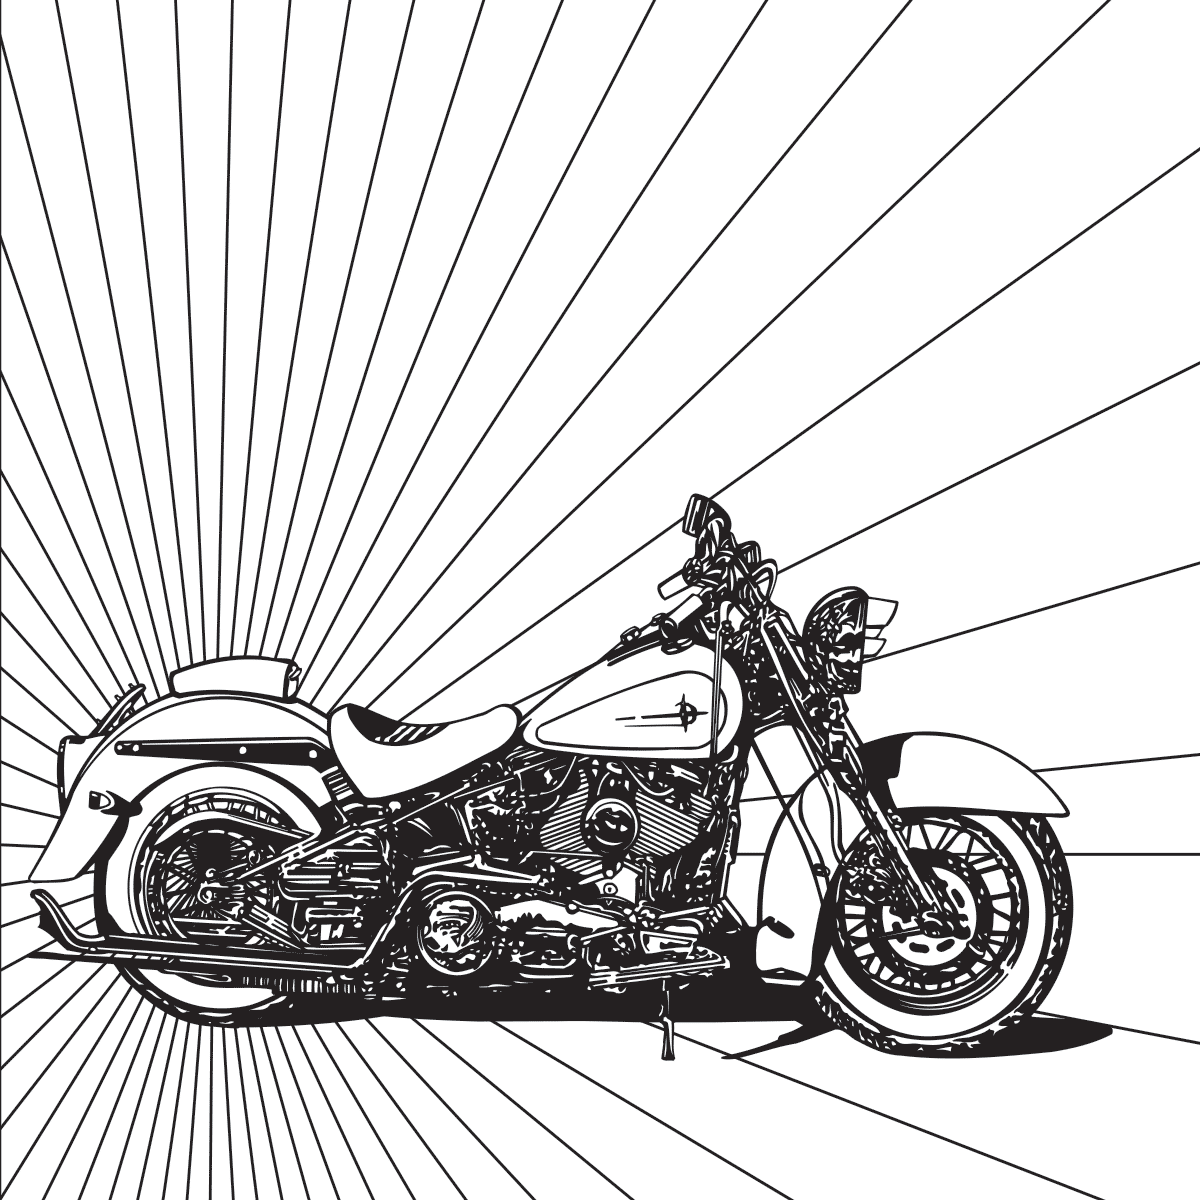 Harley Motorcycle Coloring Page | Free Adult Coloring Pages ...